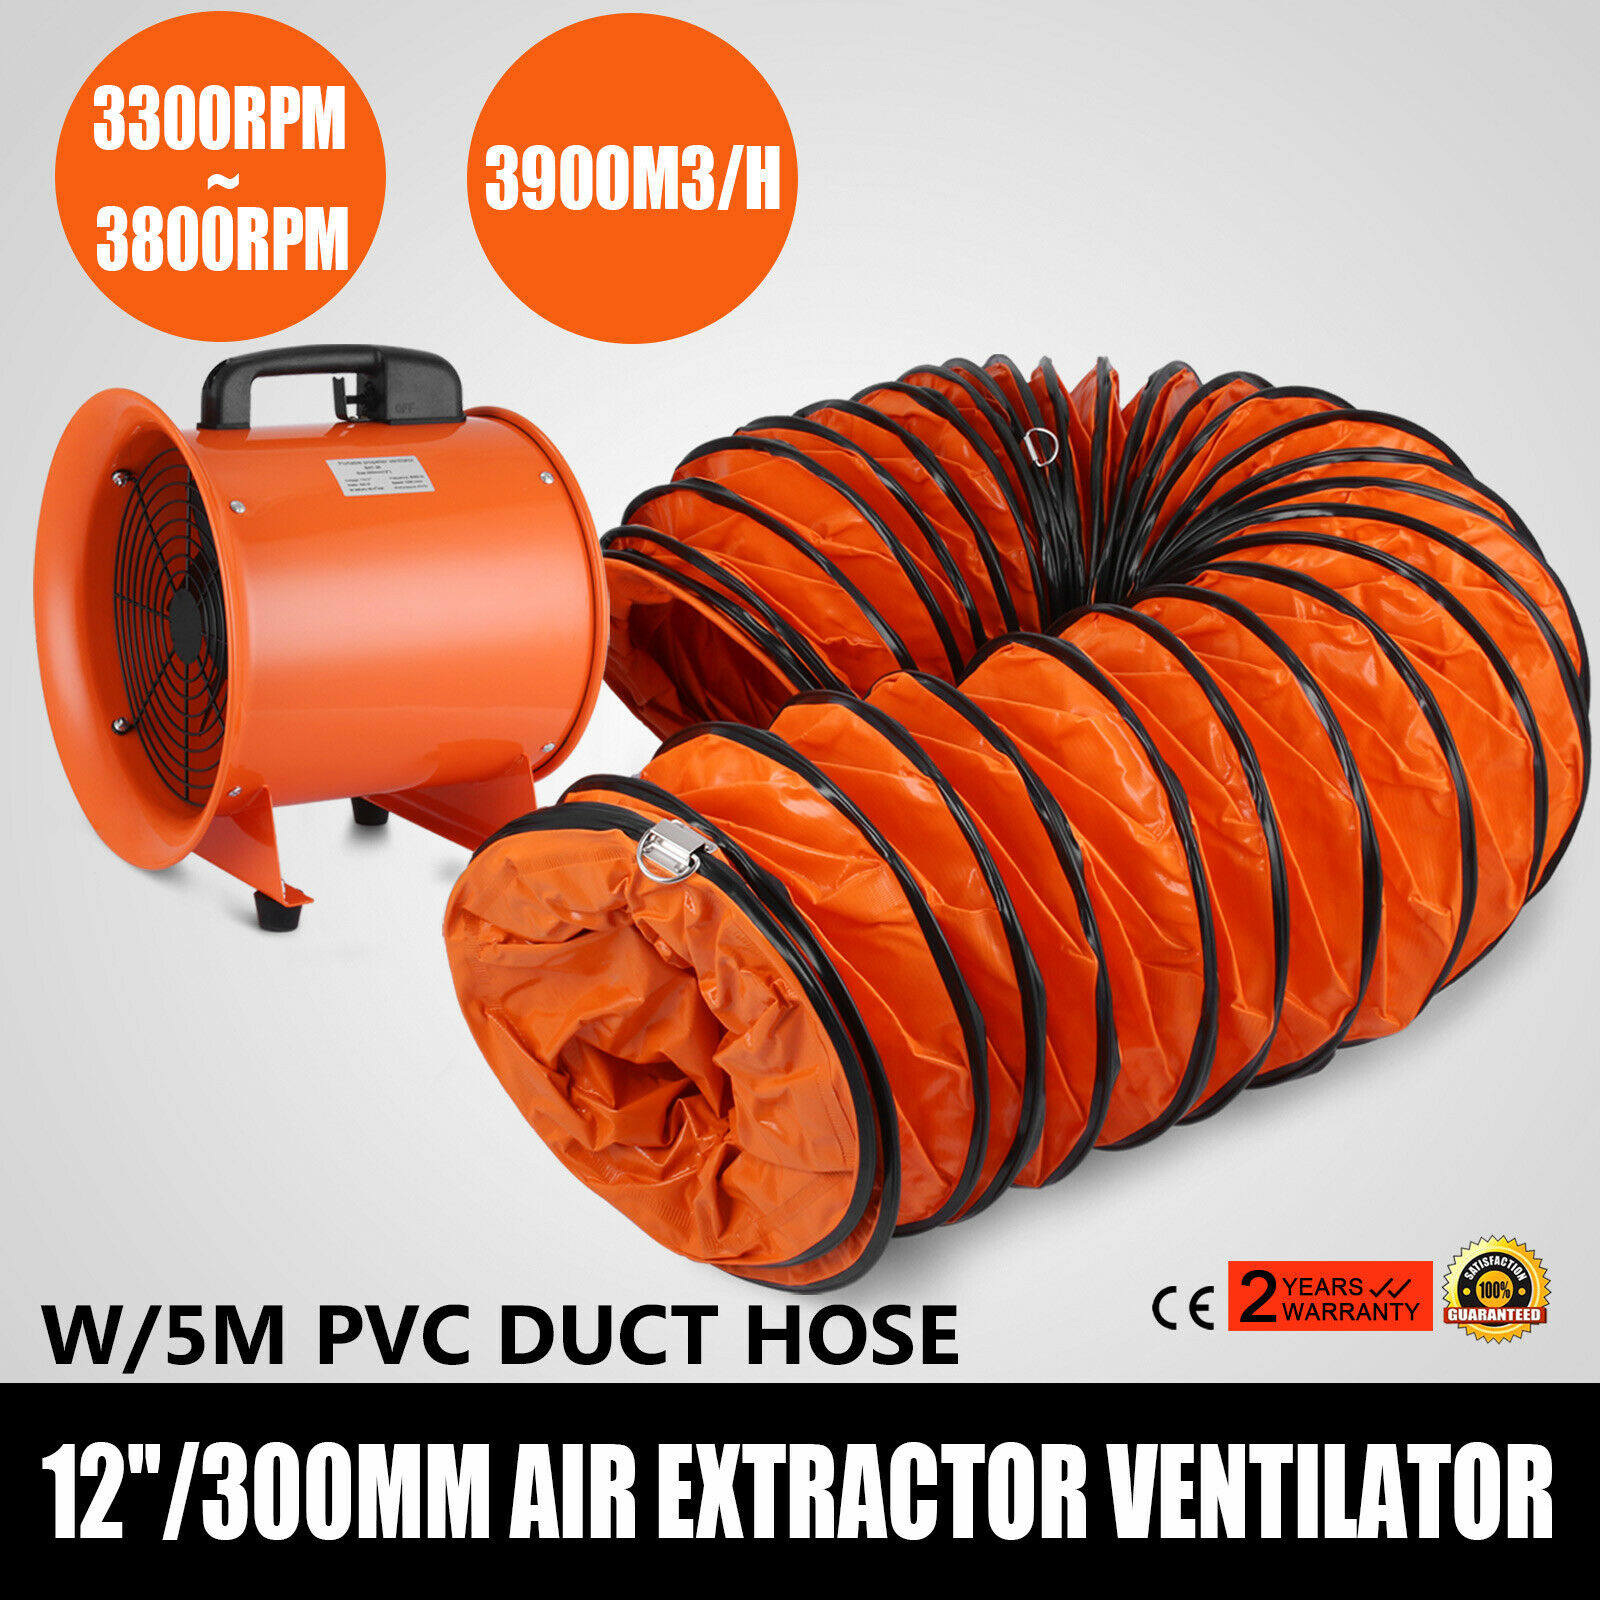 Portable Ventilation Fume Dust Extractor Ventilator Axial Blower Workshop Fan 12 INCHES